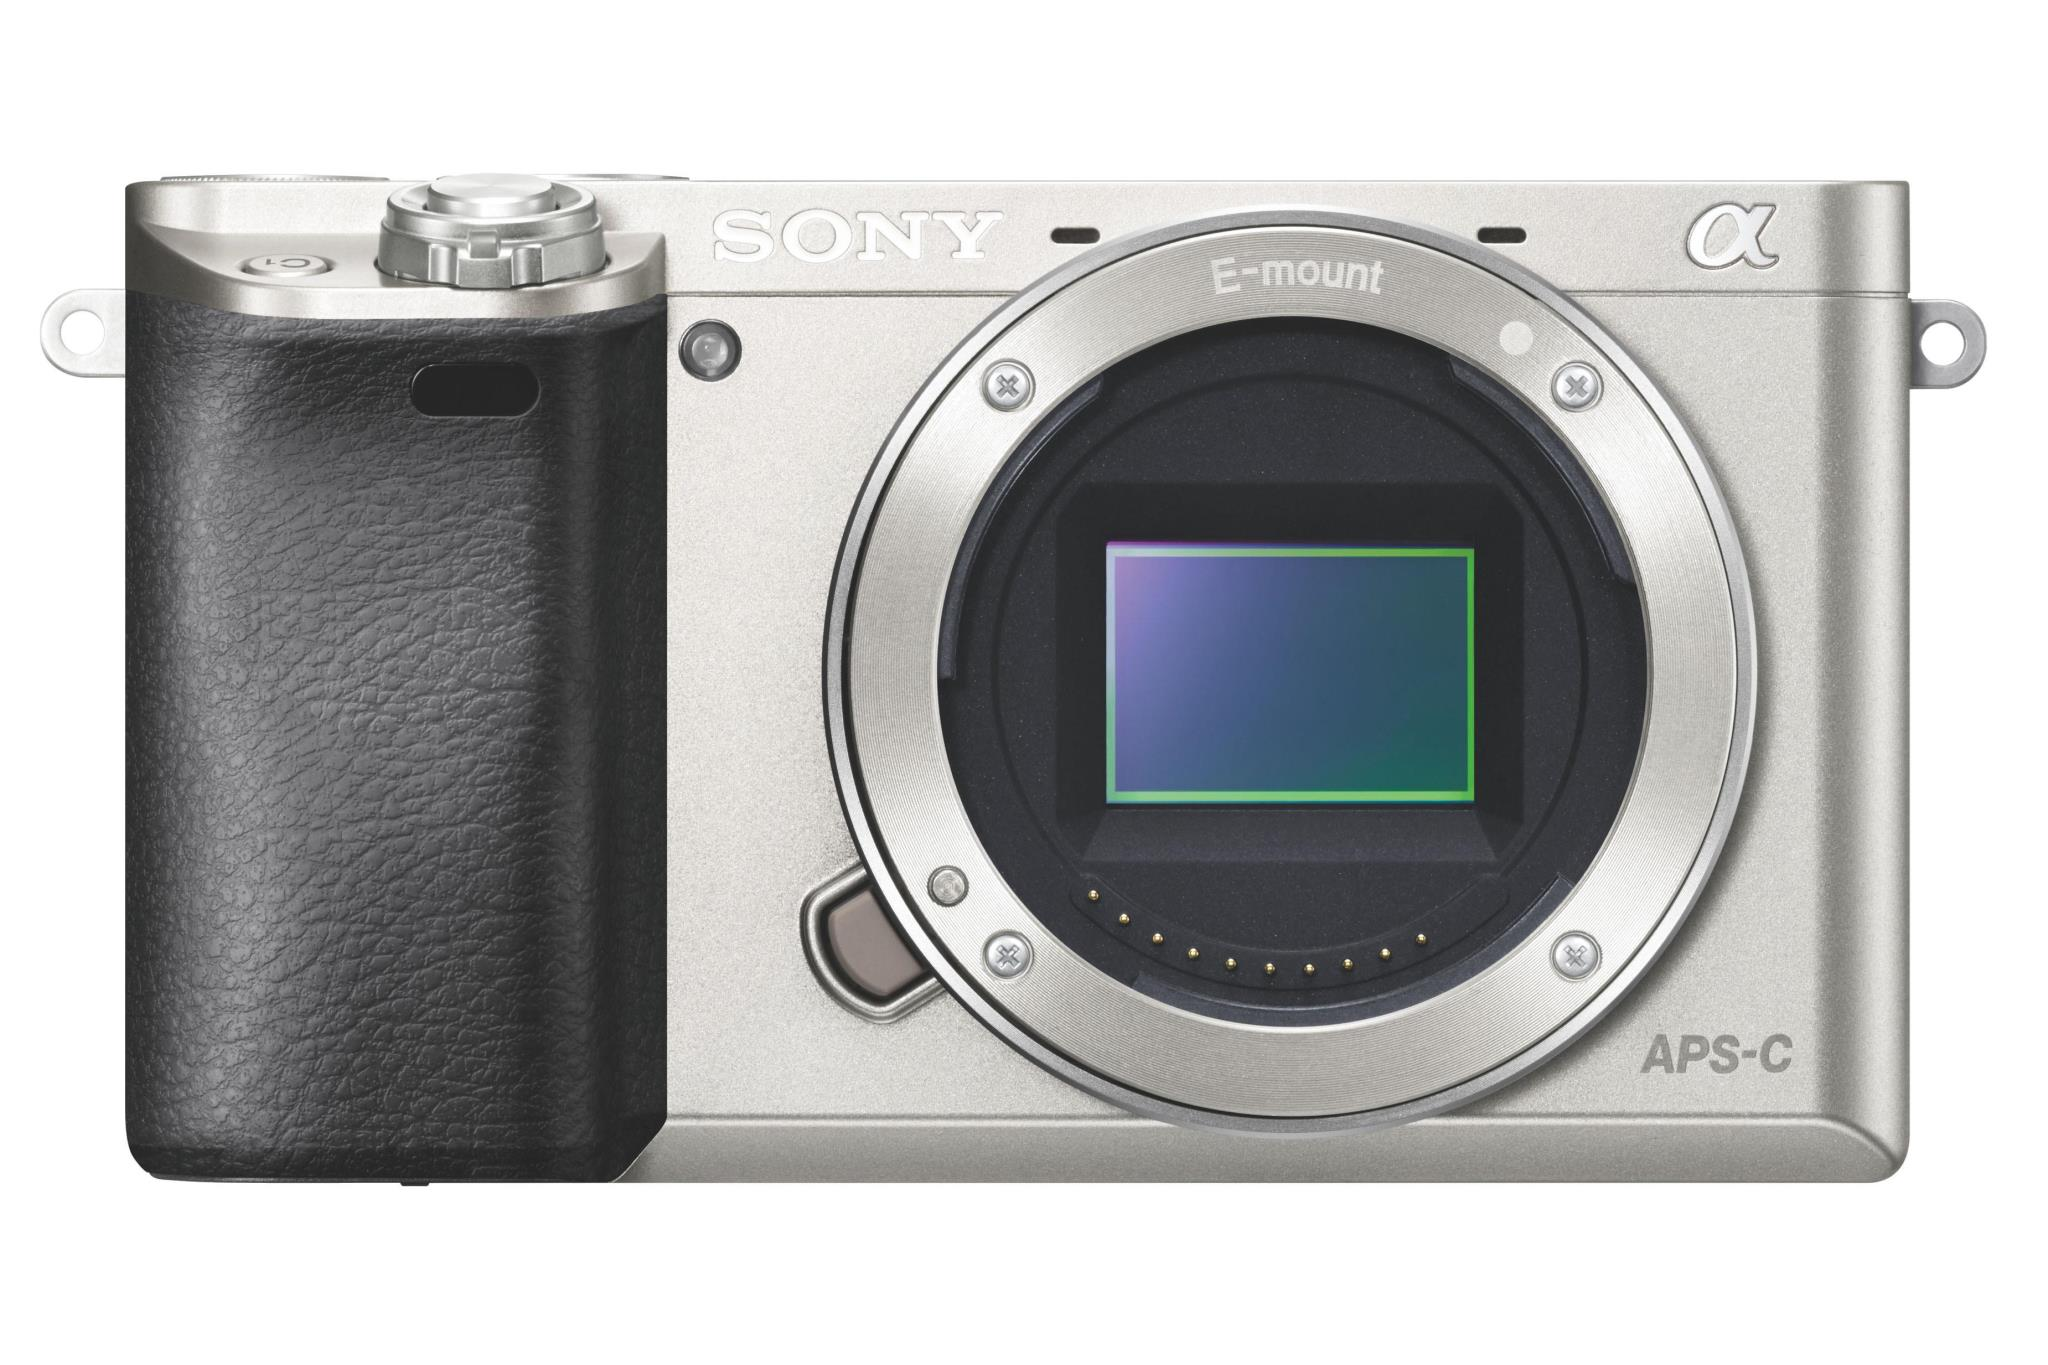 sony-alpha-a6000-csc-camera-silver-body-only-24-3mp-3-0lcd-fhd-ilce6000s-cec-b8a52e73-18f4-497d-a5fa-da6b60f169ec